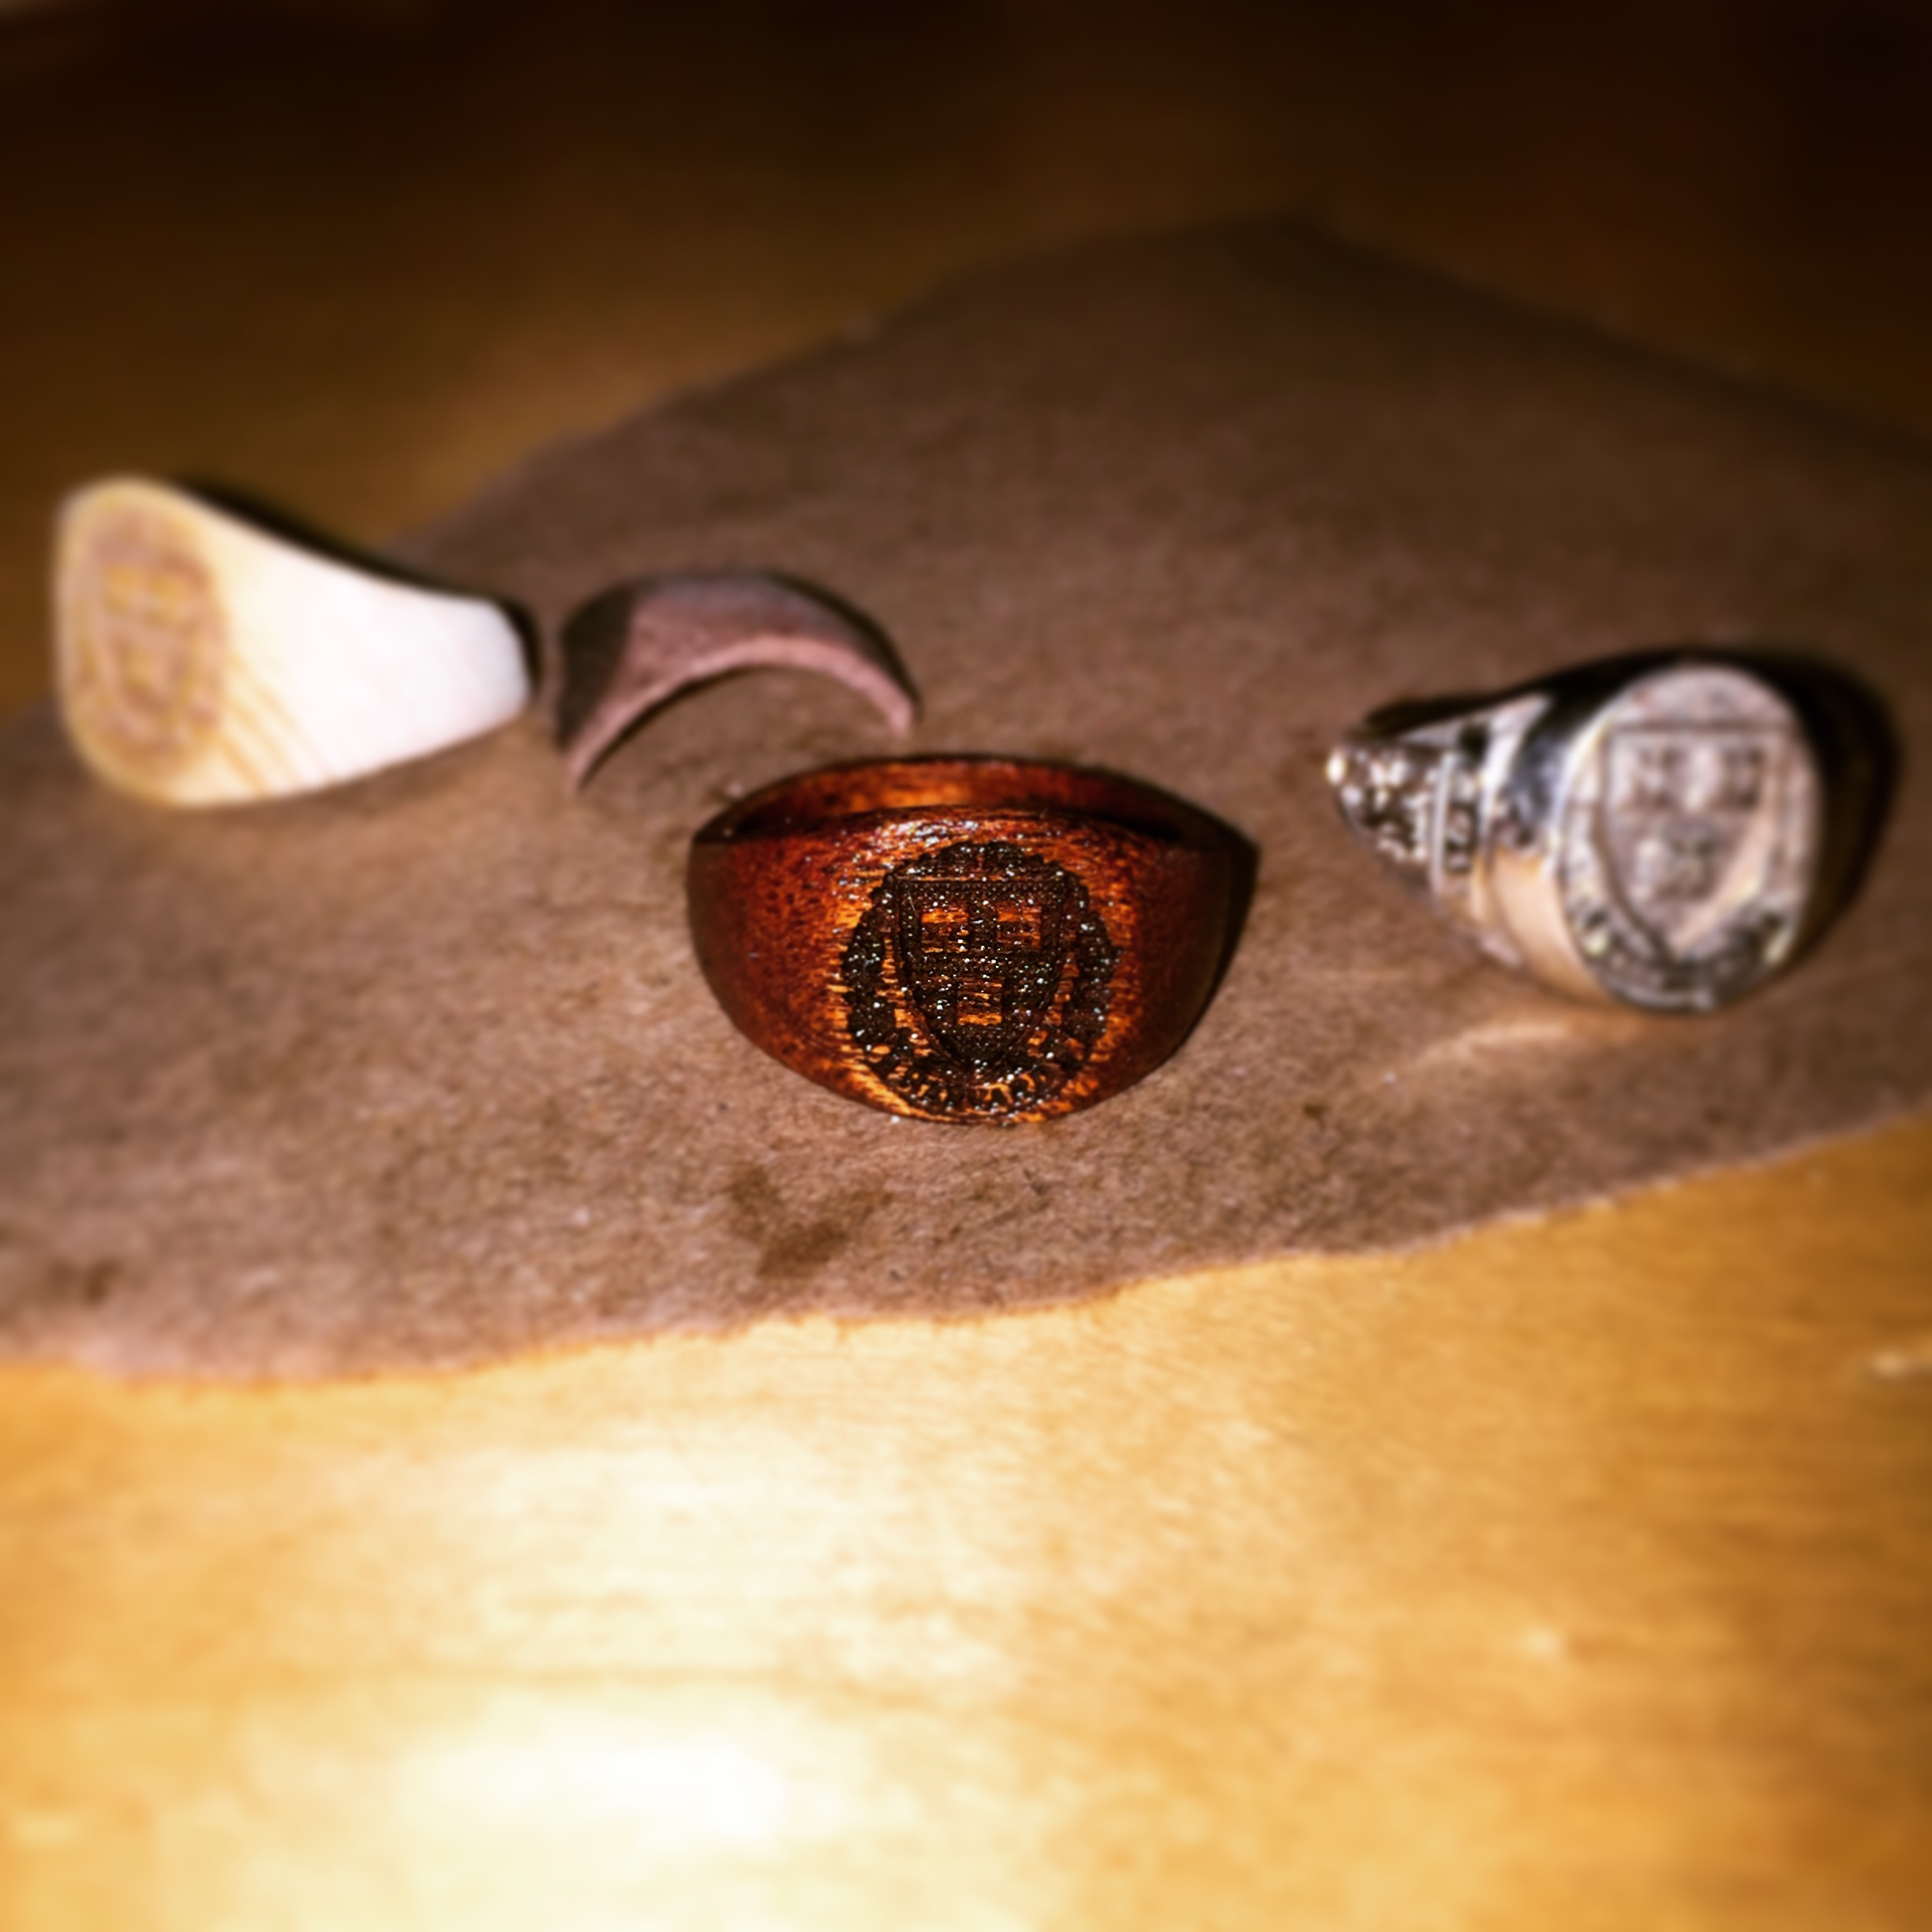 Week 3: The final ring, pictured next to an actual class ring on the right. I went through three different iterations of the ring, two of which are pictured here, before creating the final version out of mahogany. As you can see, I encountered problems when I used soft woods [cherry and pine], when creating the ring; mahogany was strong enough to maintain its shape without cracking, even in the delicate shape of a ring. The final ring was sanded down with extra fine sandpaper and mineral oil to give it the almost goldensheen pictured here.